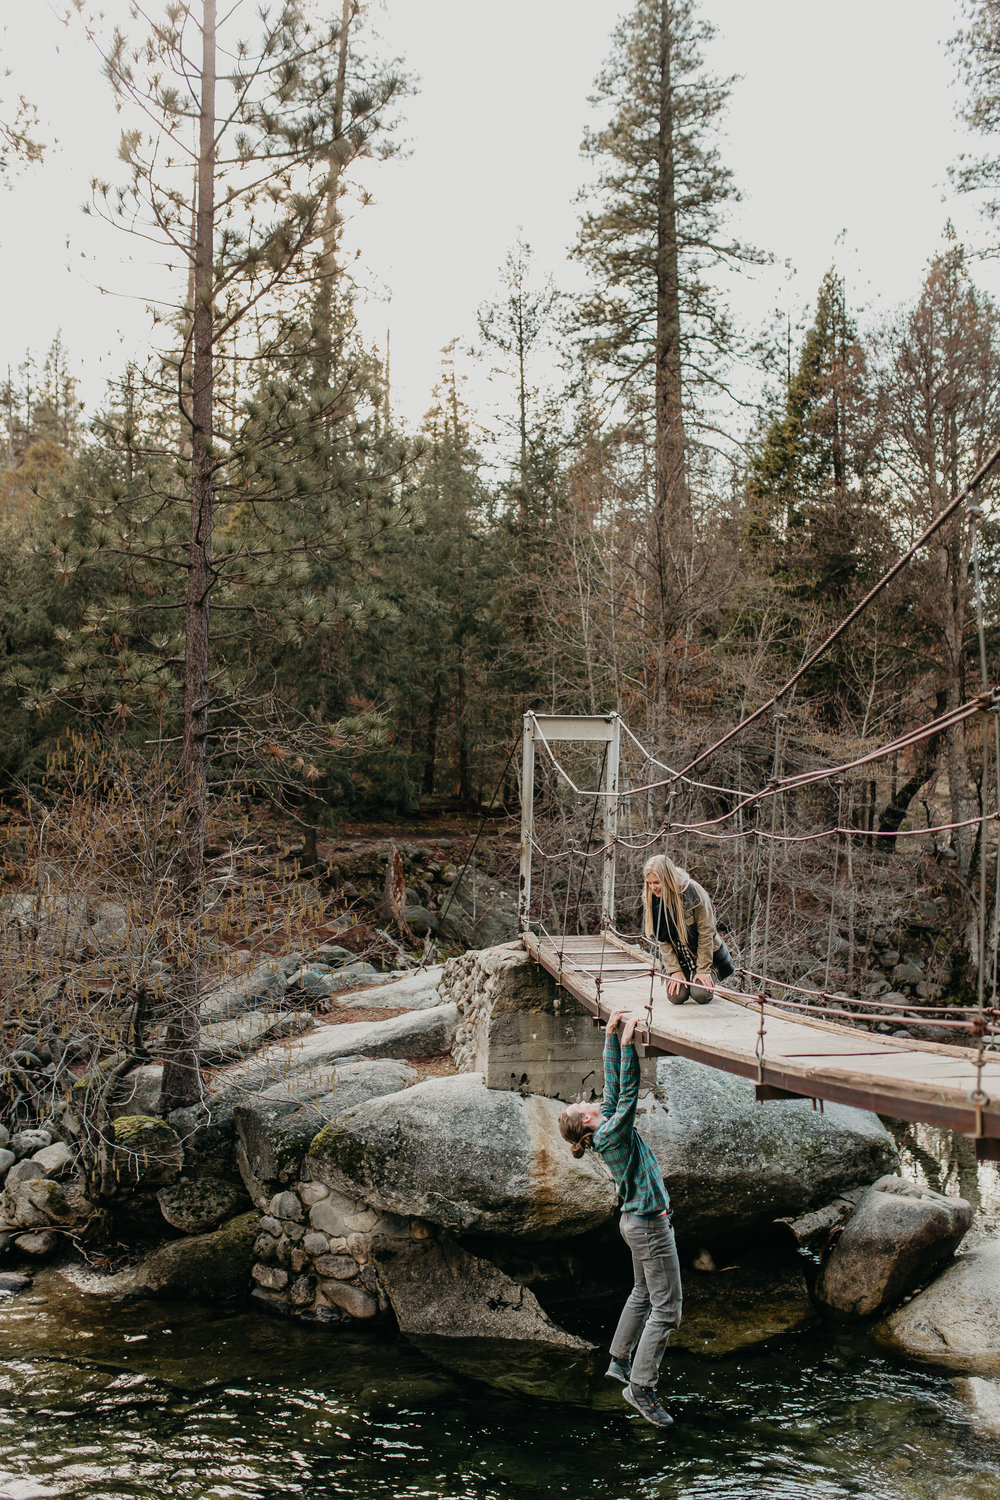 nicole-daacke-photography-yosemite-riverside-adventurous-engagement-photos-in-yosemite-national-park-elopement-photographer-weddings-travel-destination-wedding-eloping-elope-pine-forest-41.jpg